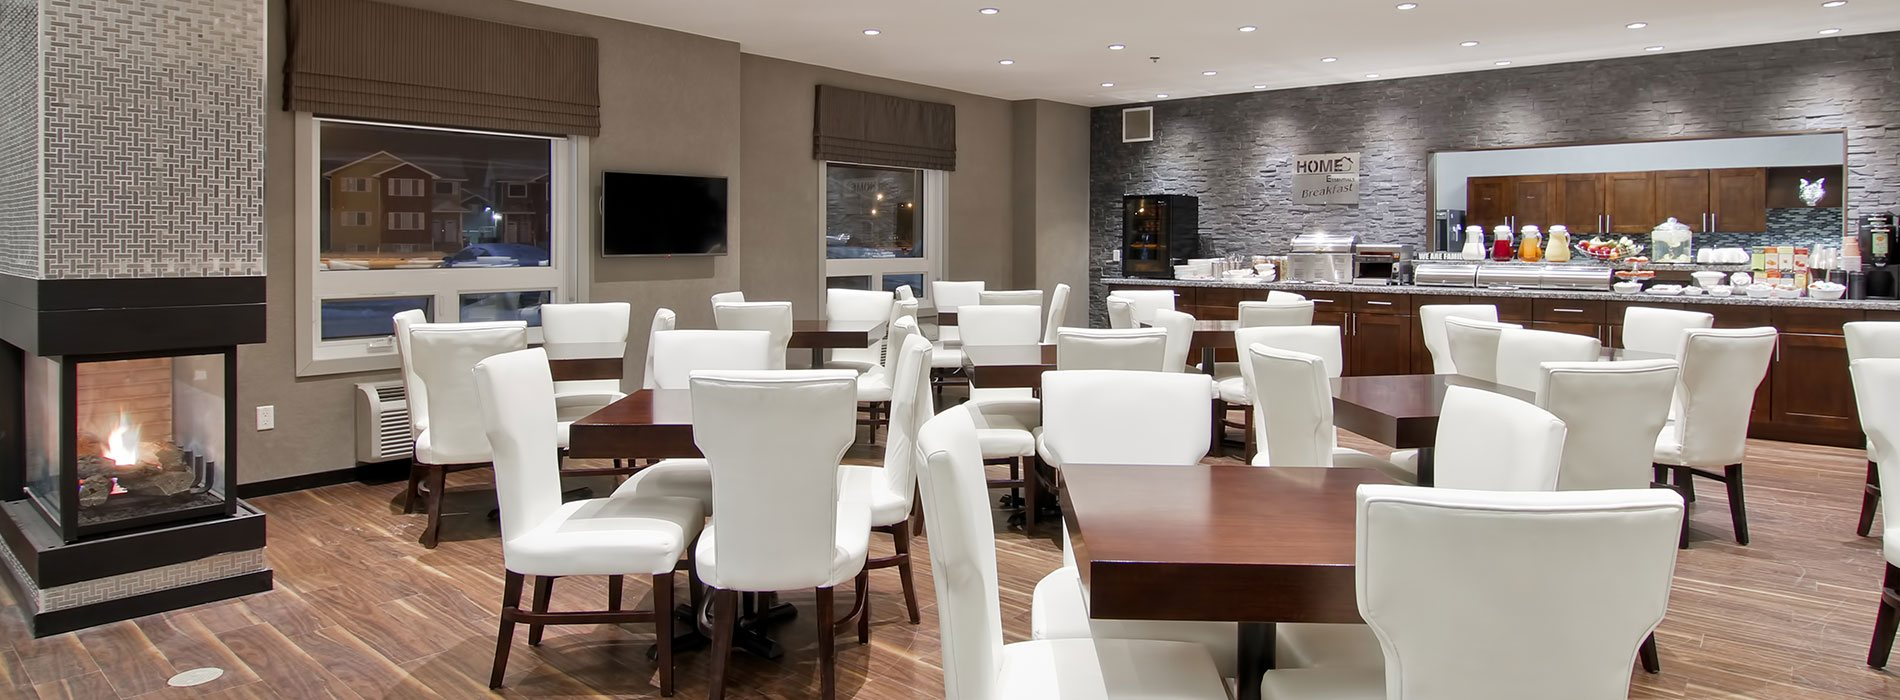 Square chocolate brown eating tables and white high backed upholstered chairs are placed throughout the HomeEssentials breakfast room at d3h Home Inn & Suites Regina Airport.  A long marbled granite top breakfast counter, with chocolate brown cabinetry, (stocked with beverages, stainless steel appliances, eating ware and utensils), is placed up against a fossil gray stone accent wall.  Other amenities include a wall mounted flatscreen TV and a glass enclosed fireplace with silver metal herringbone patterned surround.